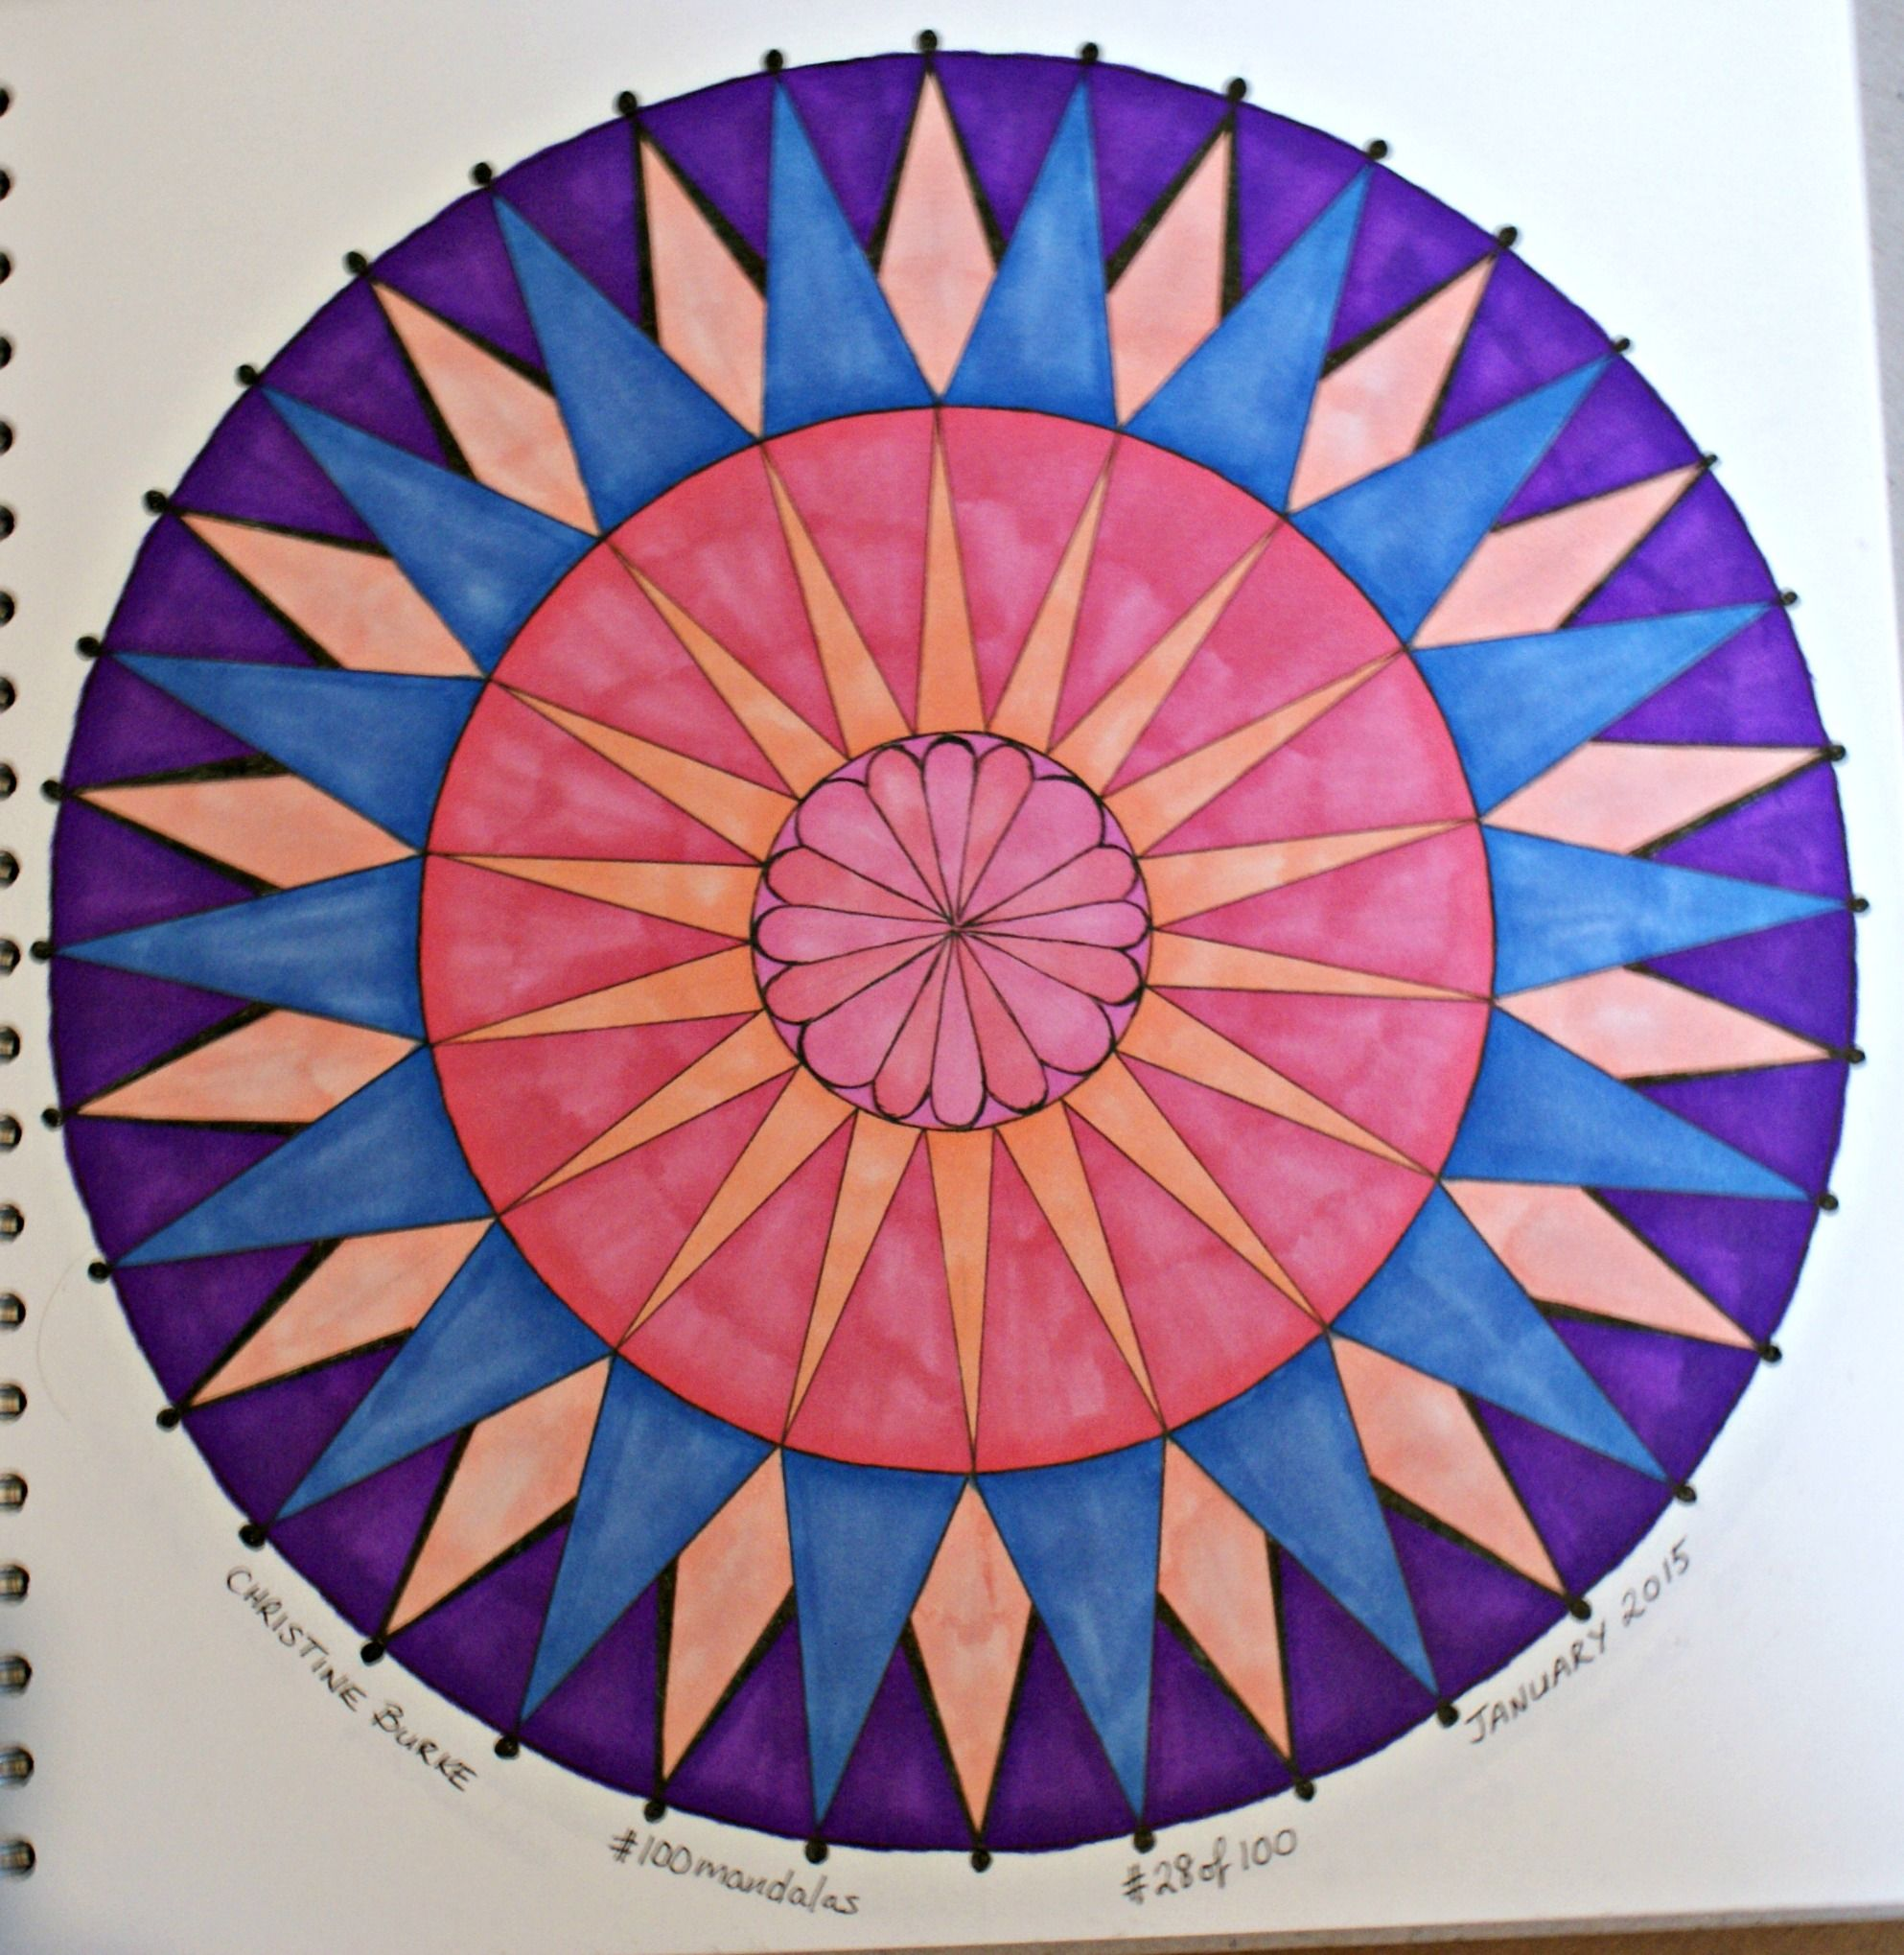 #100mandalas - mandala # 28 of 100 - January 2015